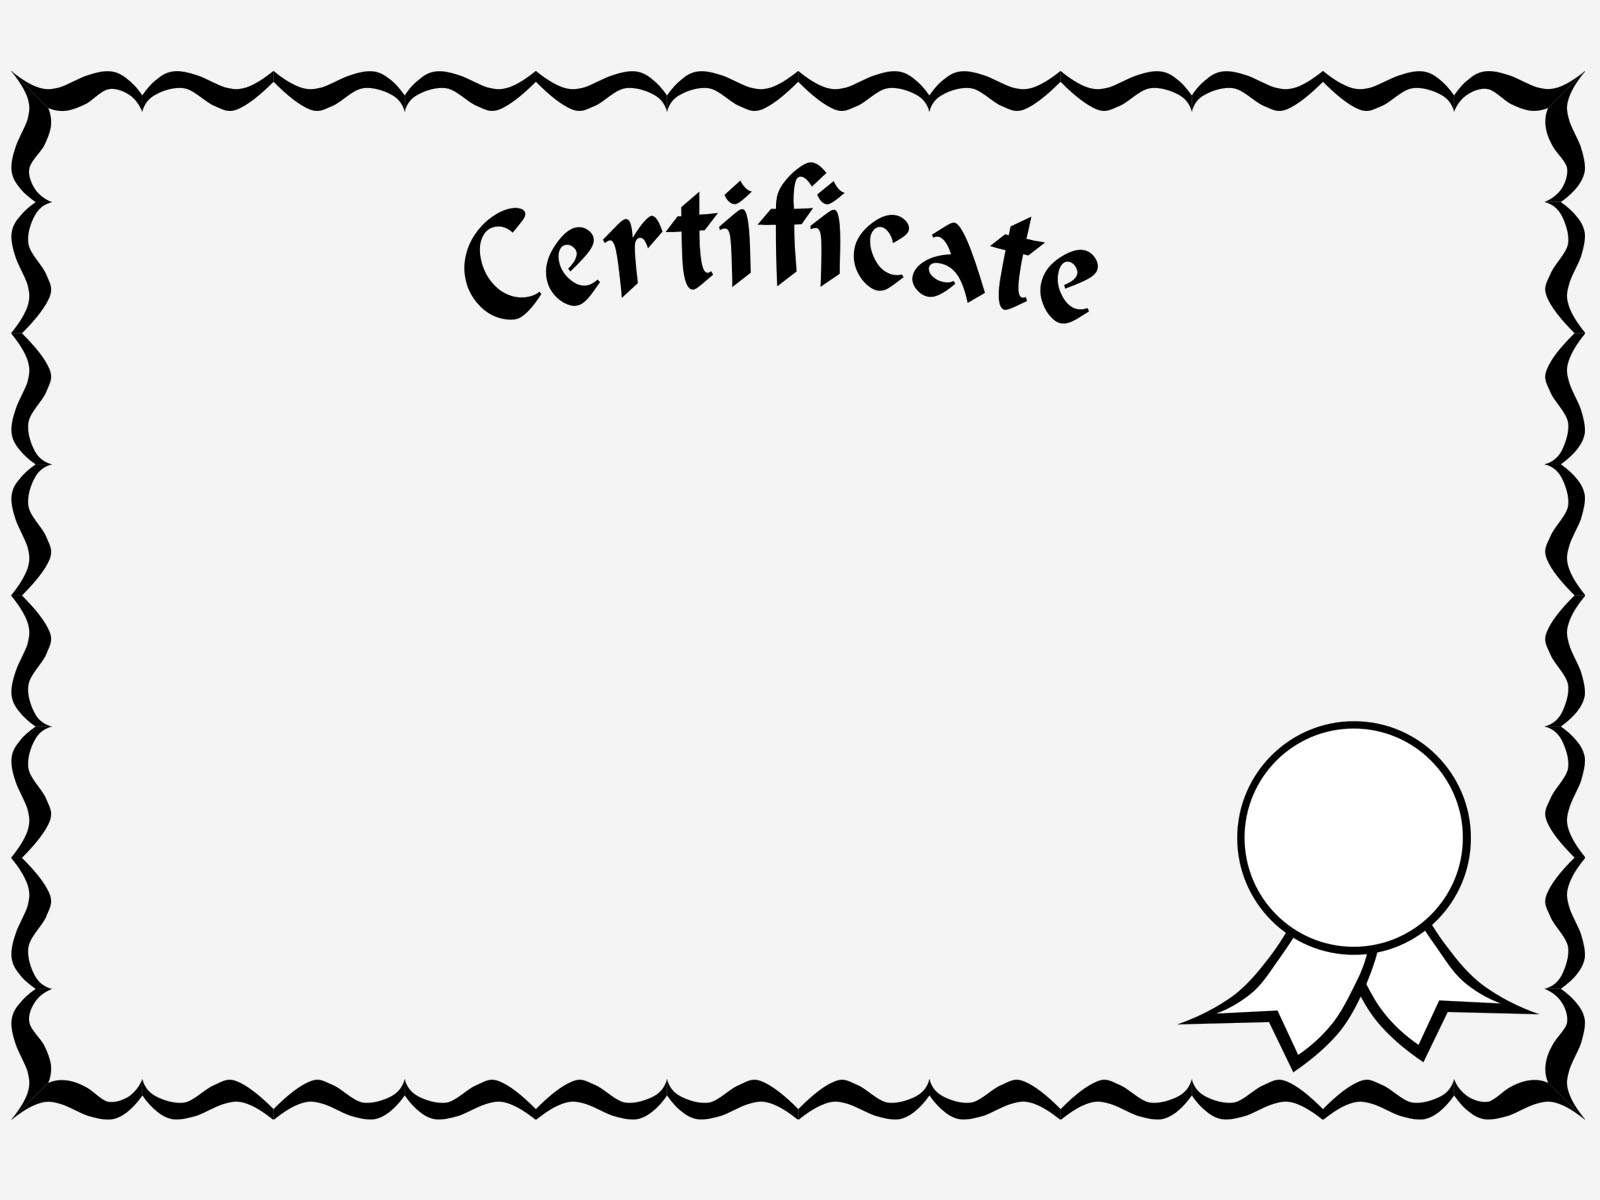 background templates for certificates clipart best diploma certificate frame ppt backgrounds powerpoint templates